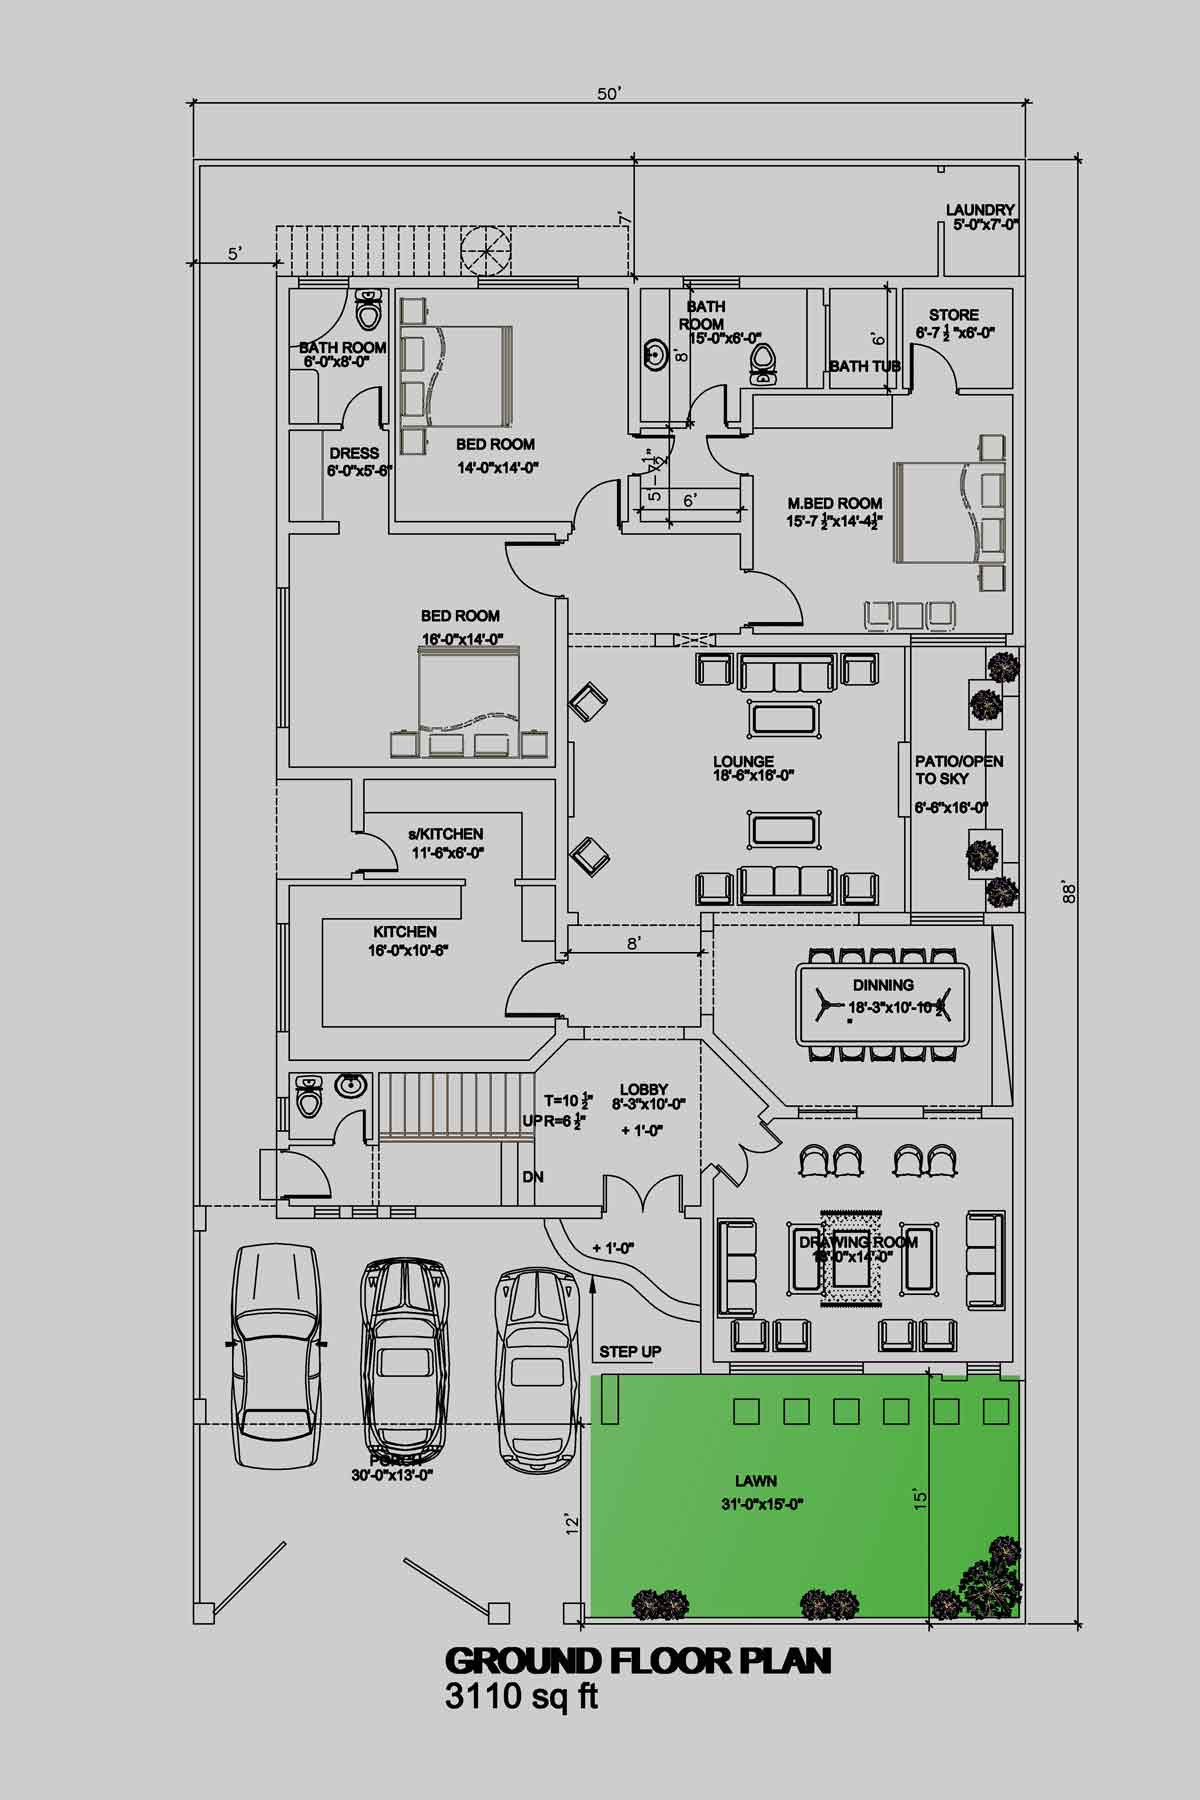 make 2d architecture drawing floor plans using autocad